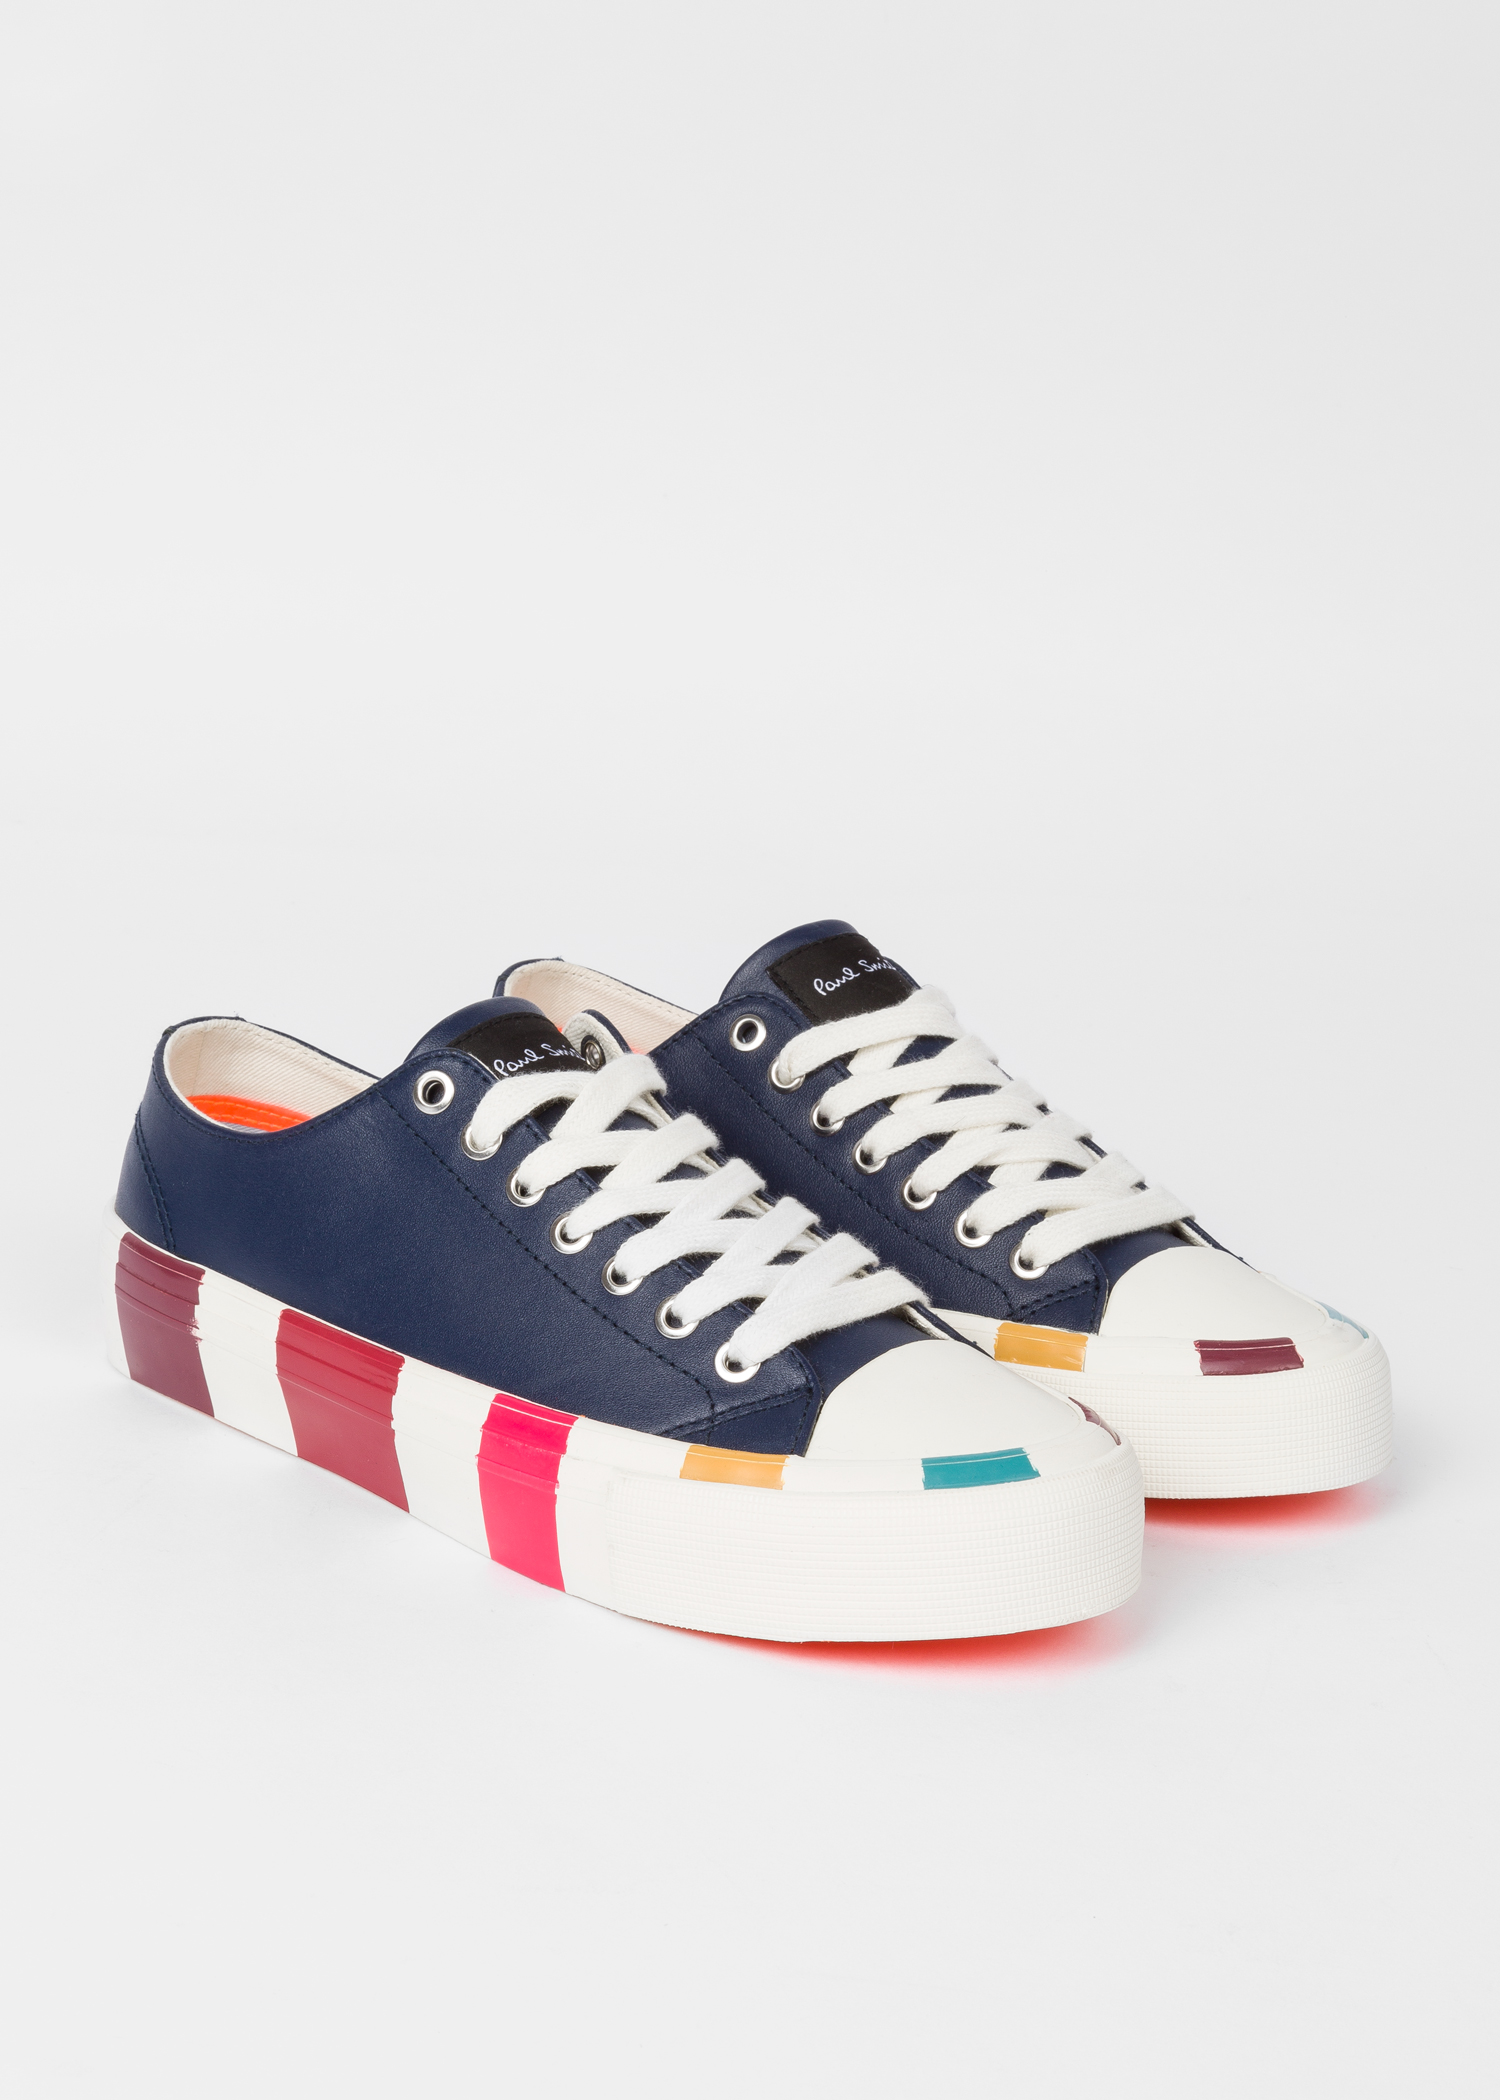 1f24242cefb9 Angled view - Women s Navy Leather  Nolan  Sneakers With Multi-Coloured  Soles Paul